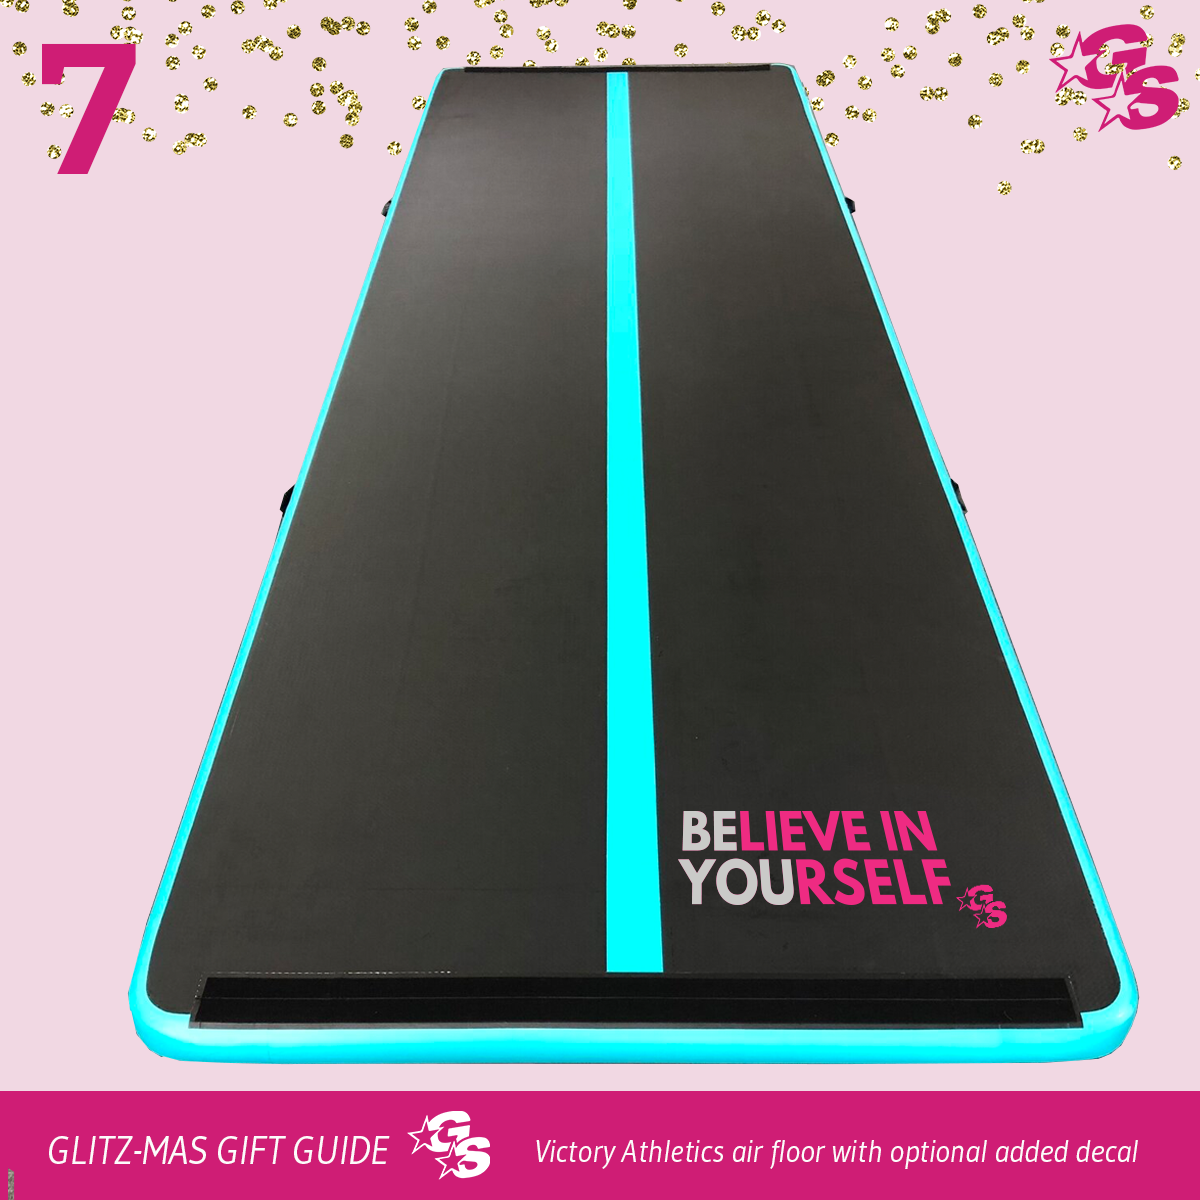 Inflatable Tumble Mat by Victory Athletics with GlitterStarz Decal -- (10 Days of GlitzMas DAY 7)